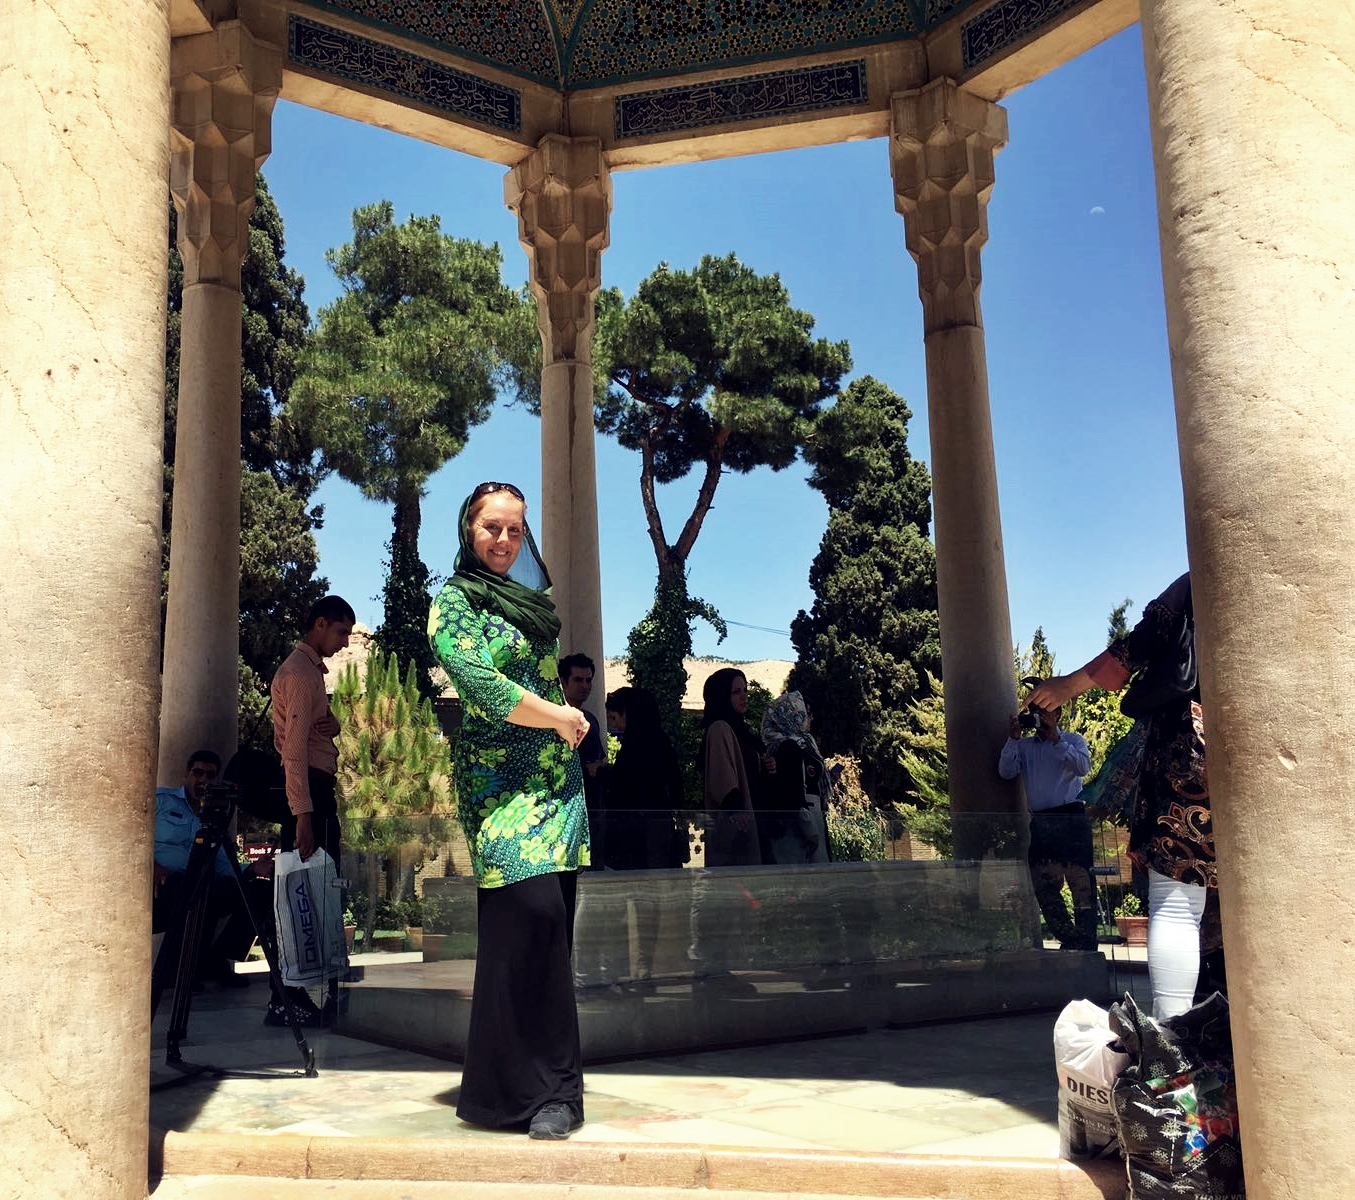 By the grave monument of Hafez. Photo by Helia Bandeh.